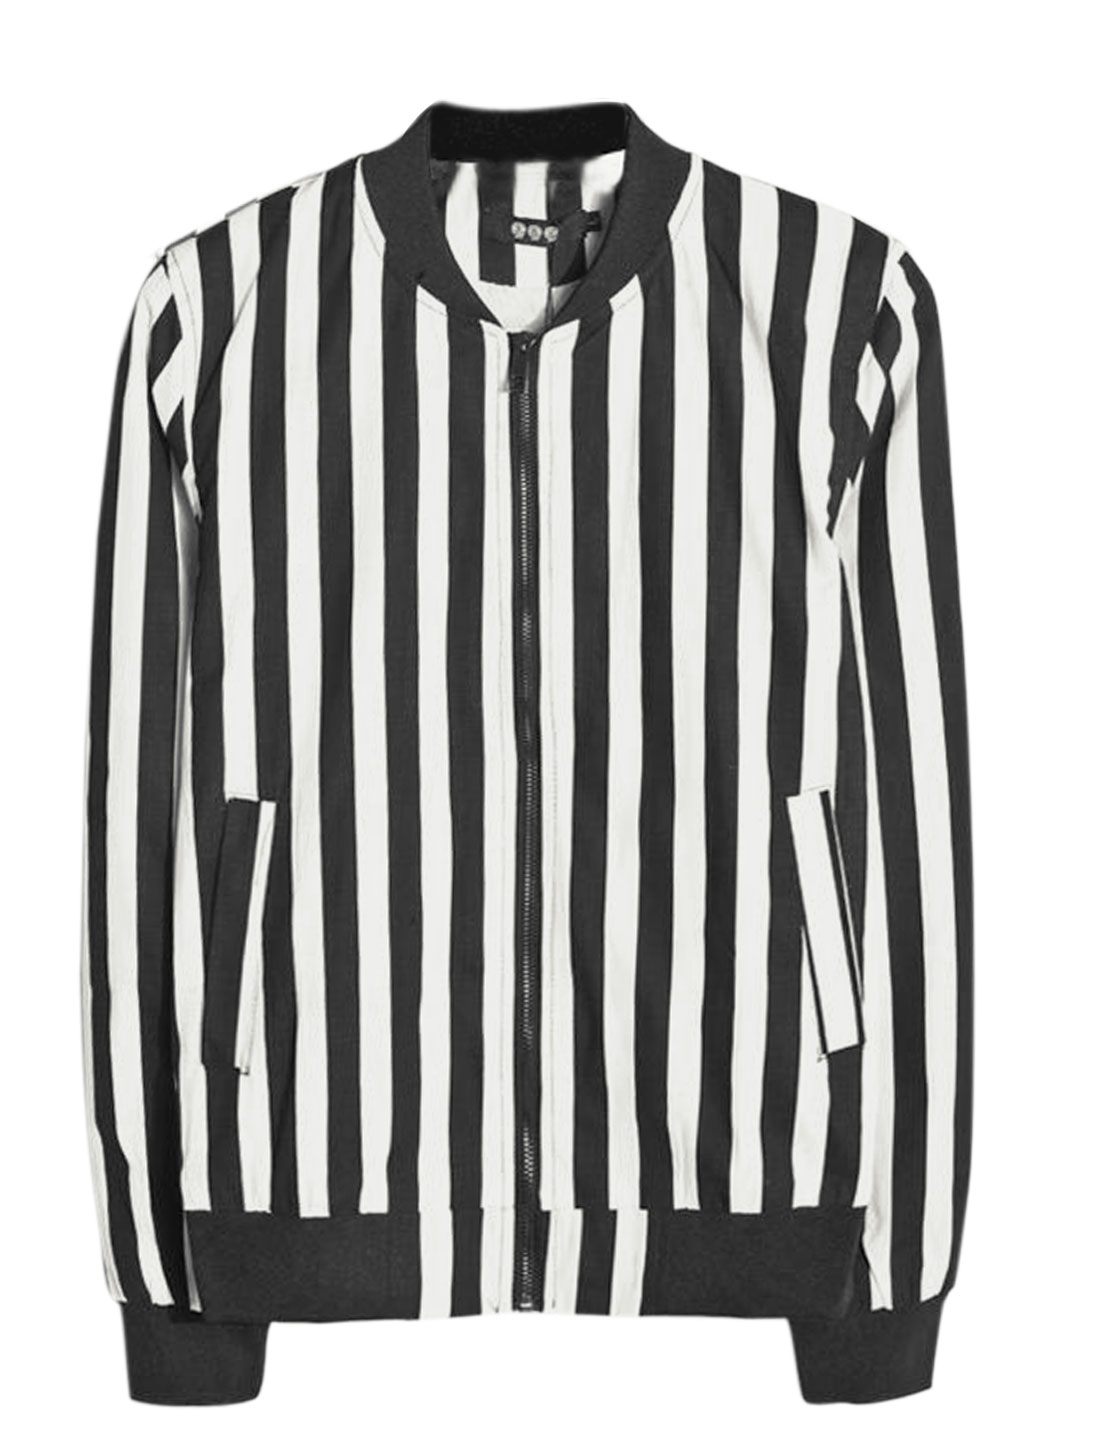 Man Black White Long Sleeves Stand Collar Stripes Zippered Front Jacket S